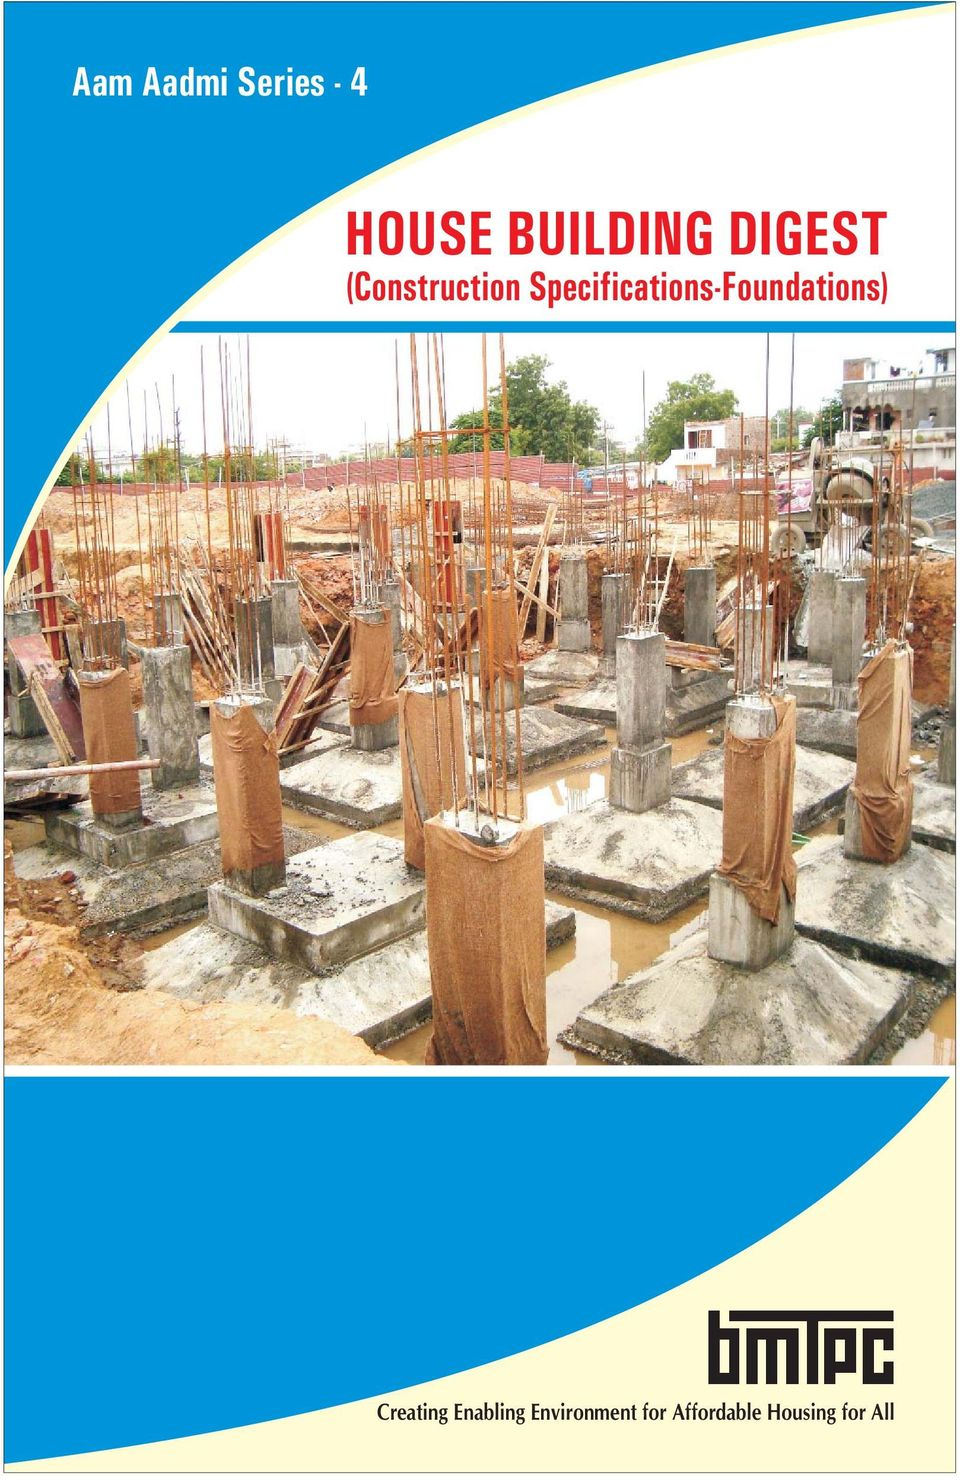 Specifications-Foundations)